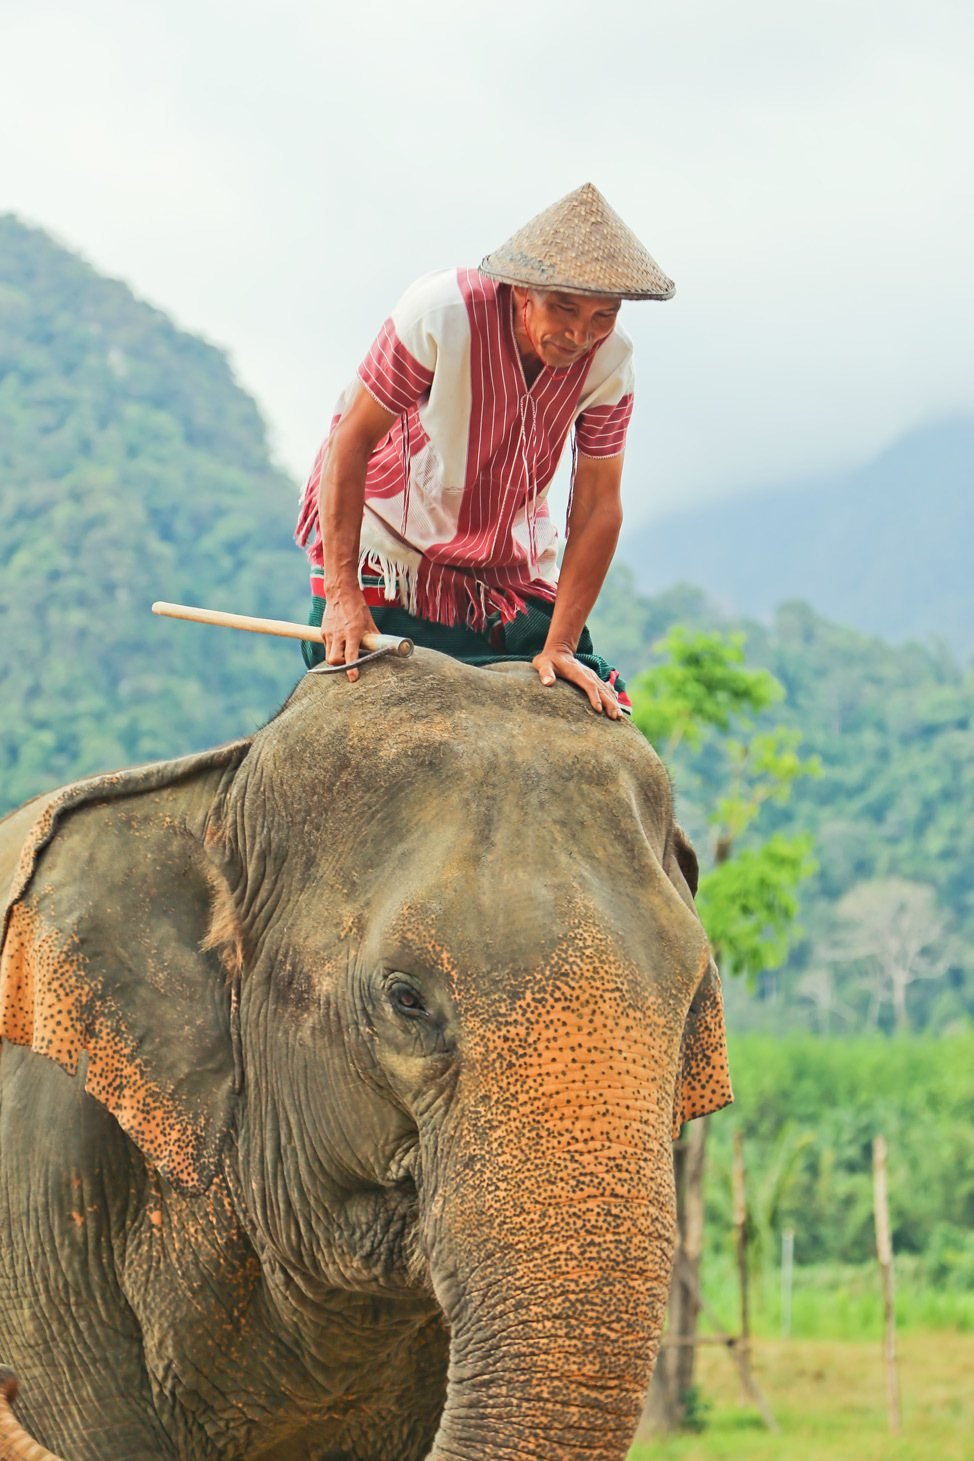 Elephant Camp at Elephant Hills, Khao Sok, Thailand